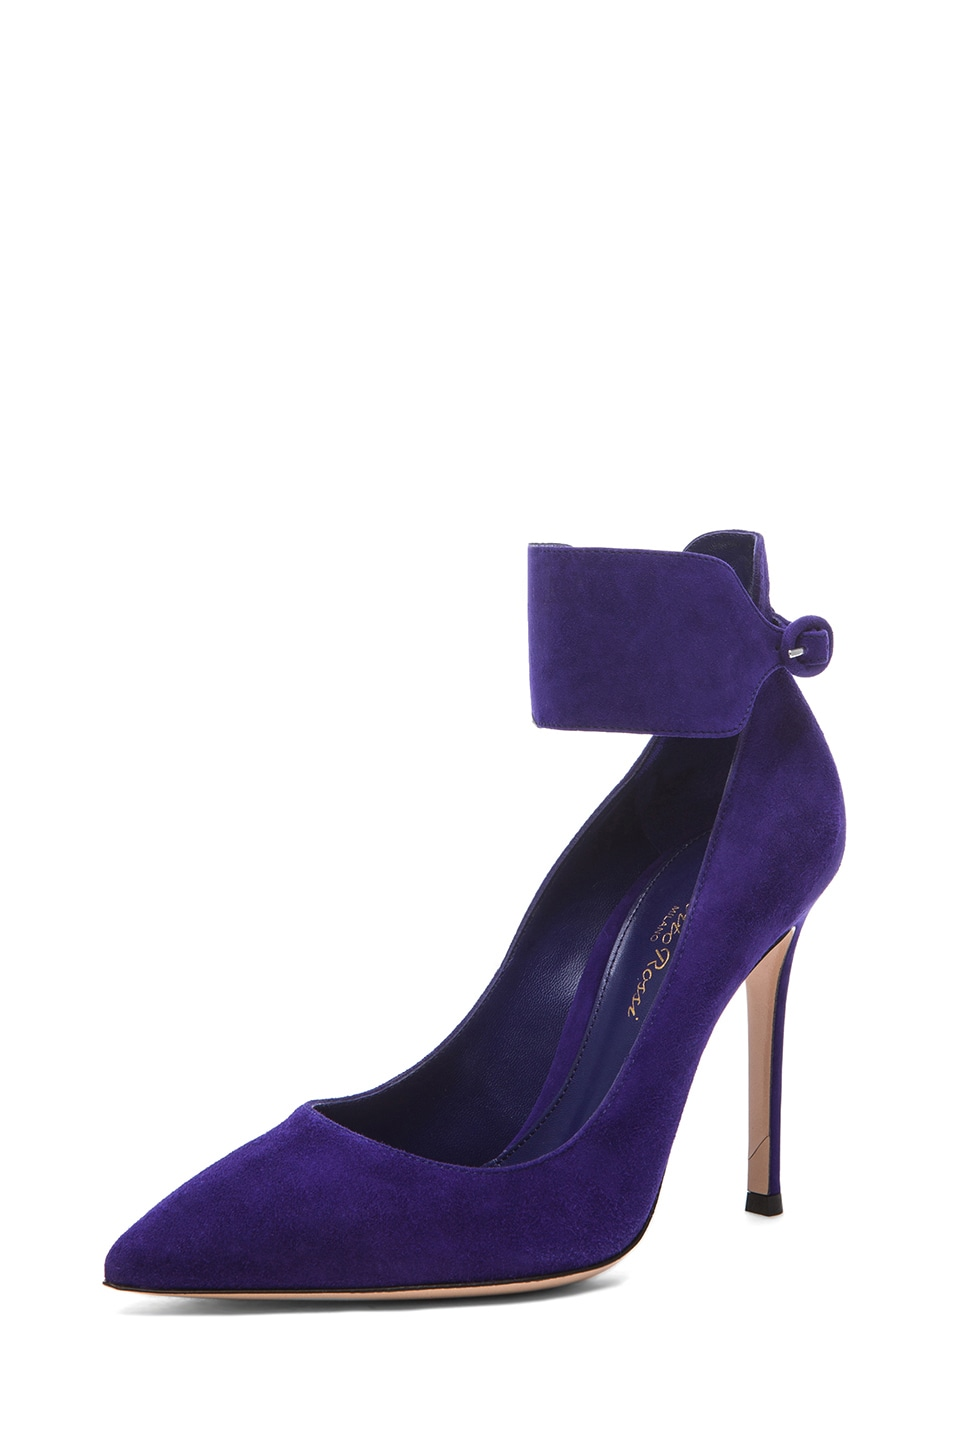 Image 2 of Gianvito Rossi Suede Ankle Strap Pumps in Indigo